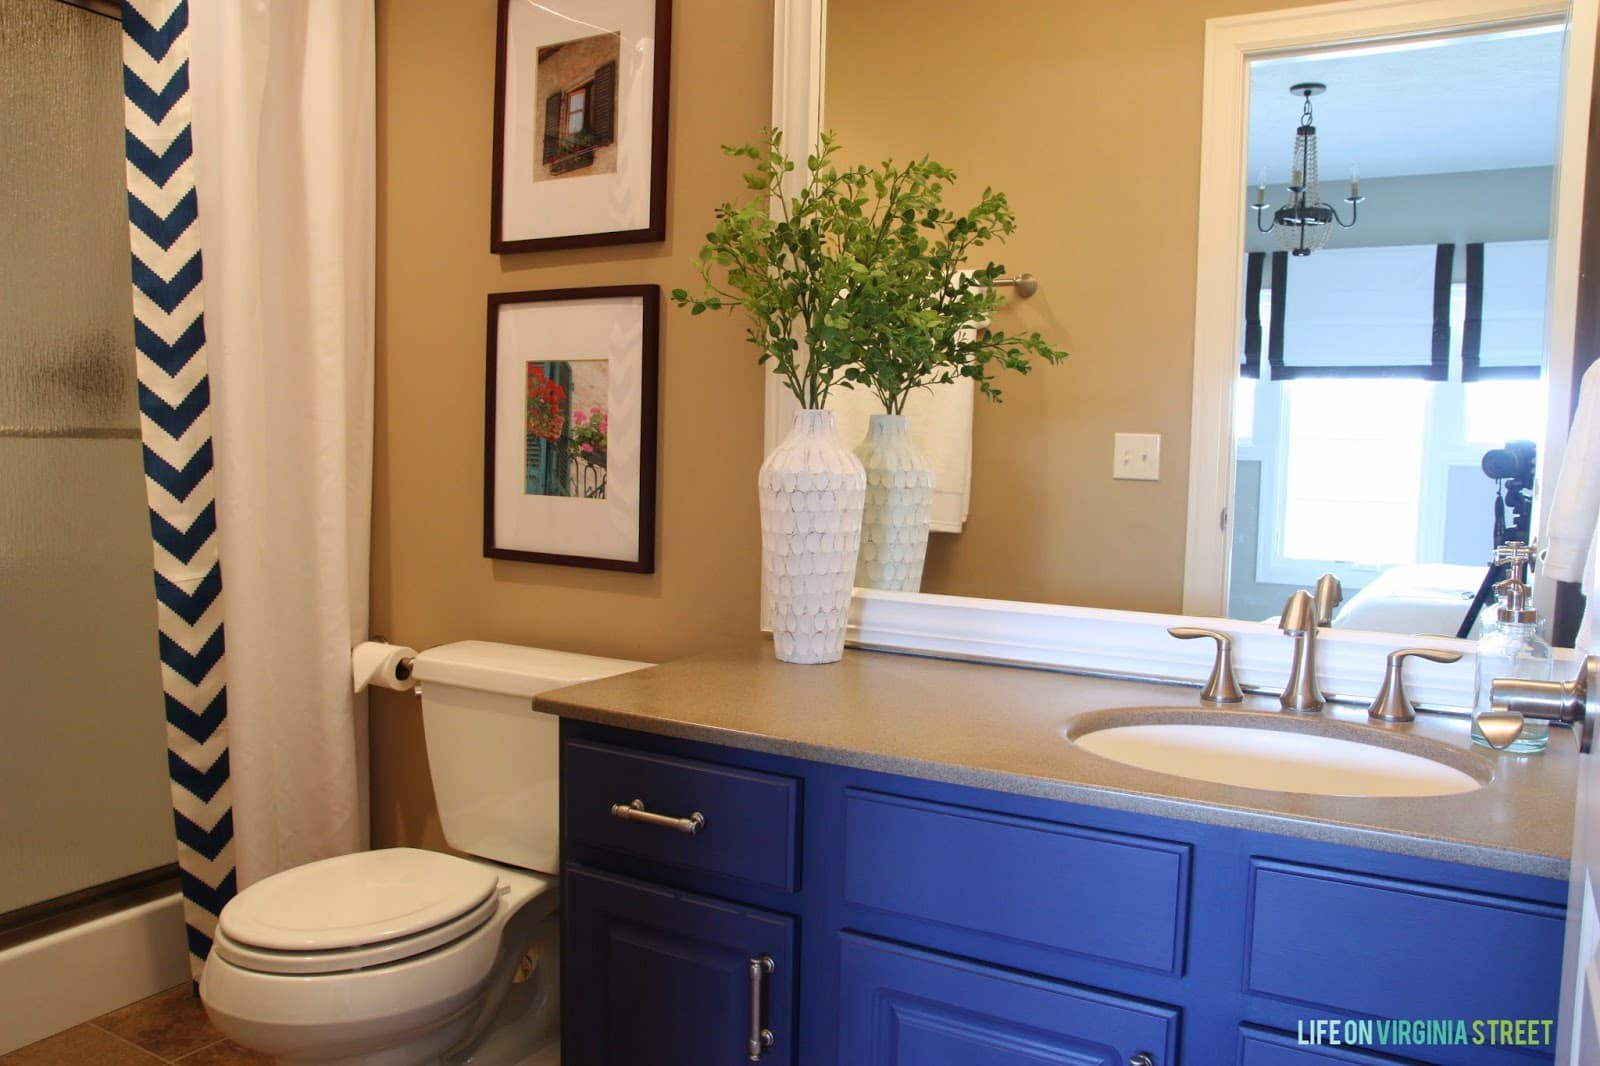 The cute bright blue vanity in our guest bathroom really pops.